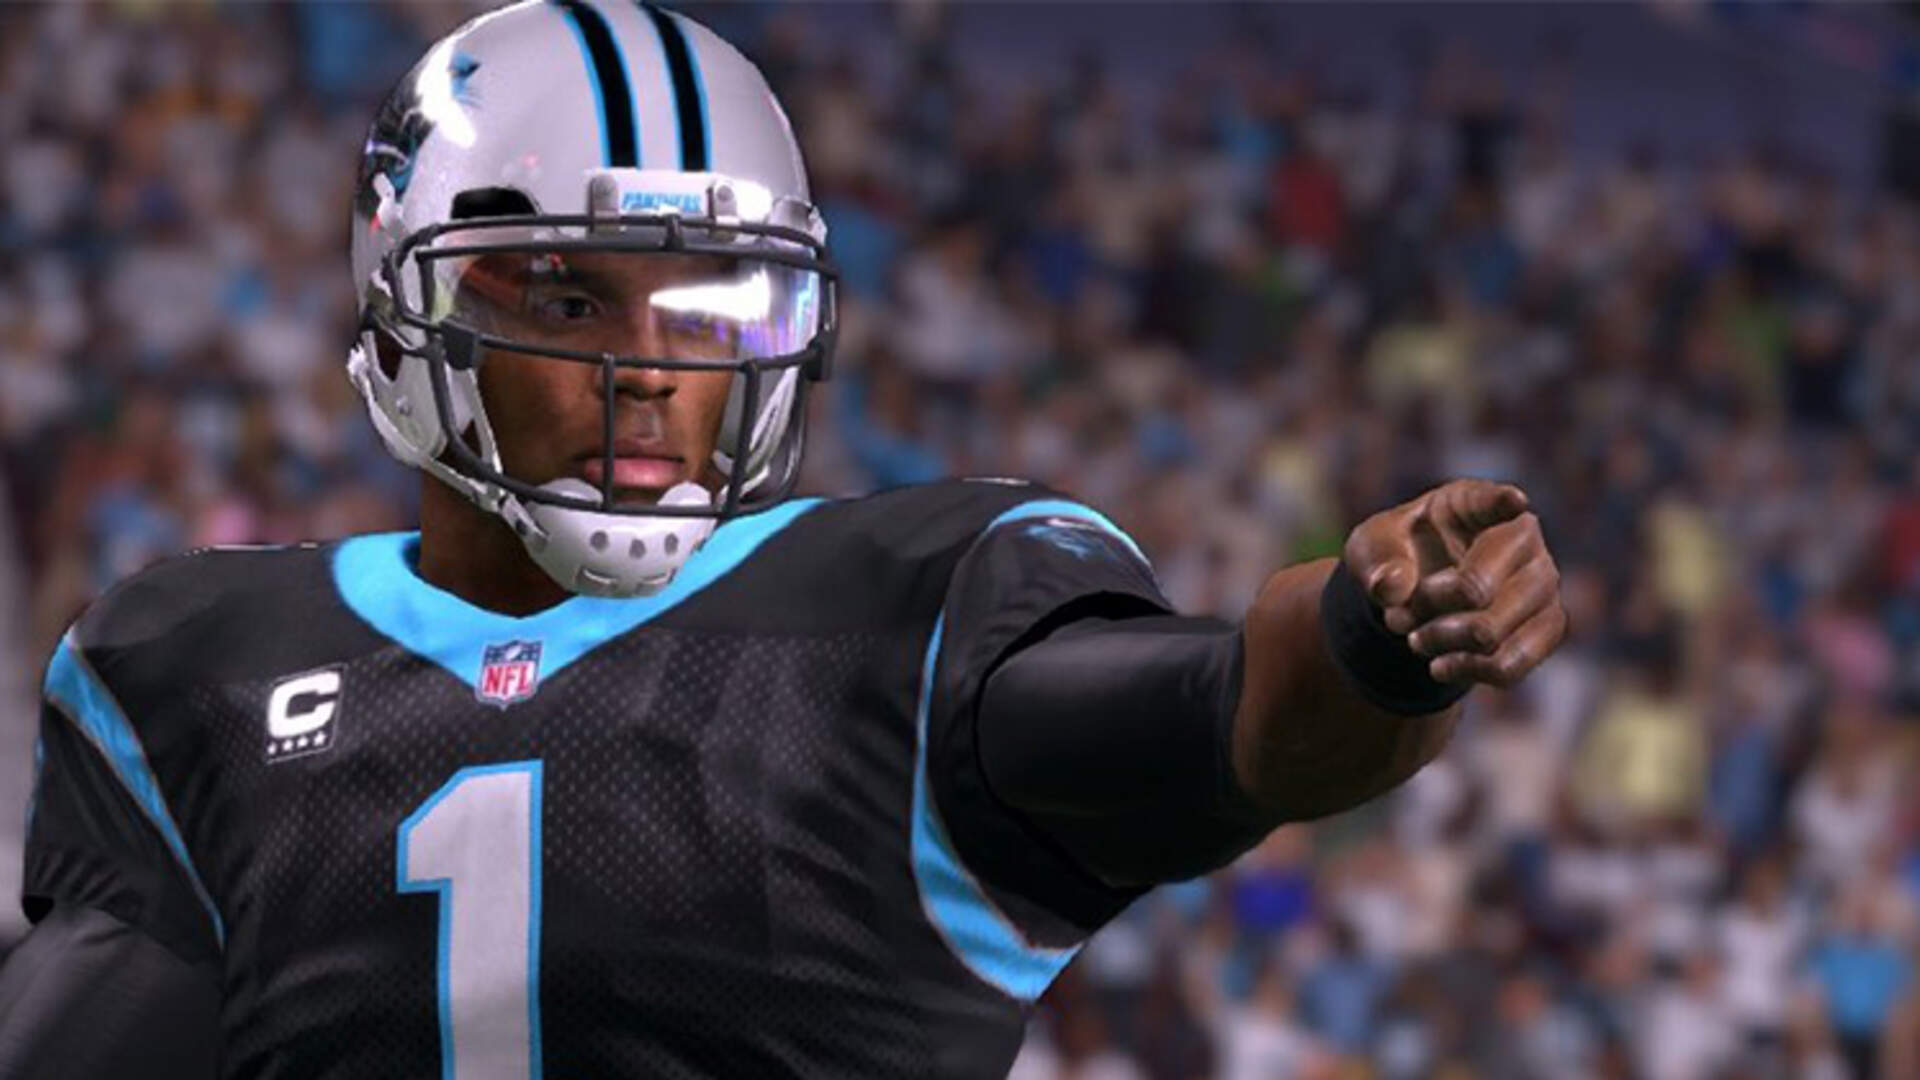 Madden Lawsuit Moves Forward as EA Sports' Free Speech Defense Fails